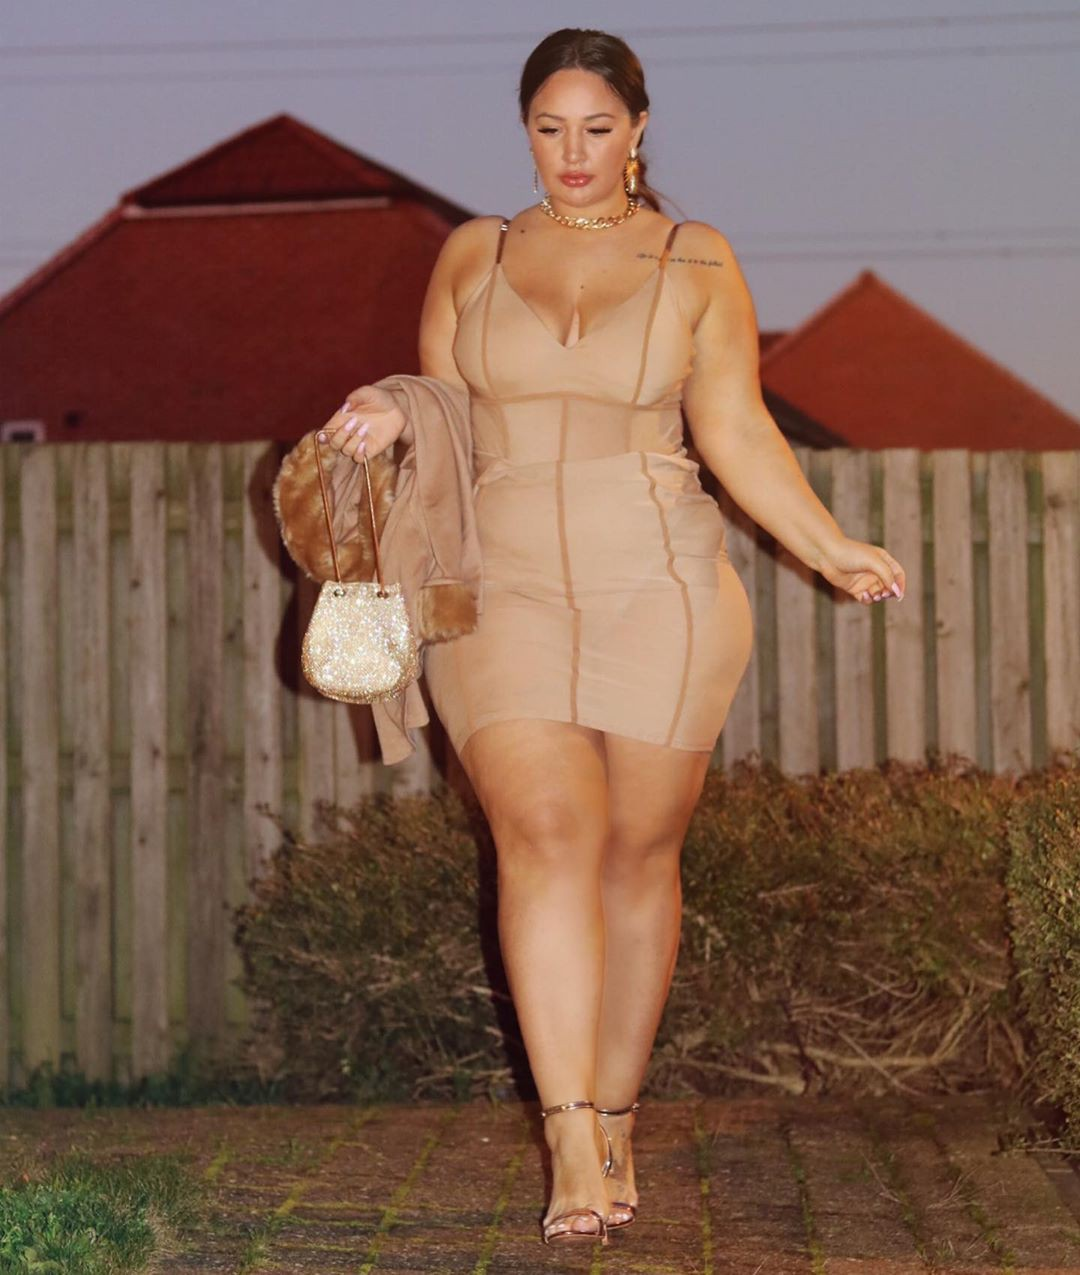 brown dresses ideas with dress, woman thighs, hot legs